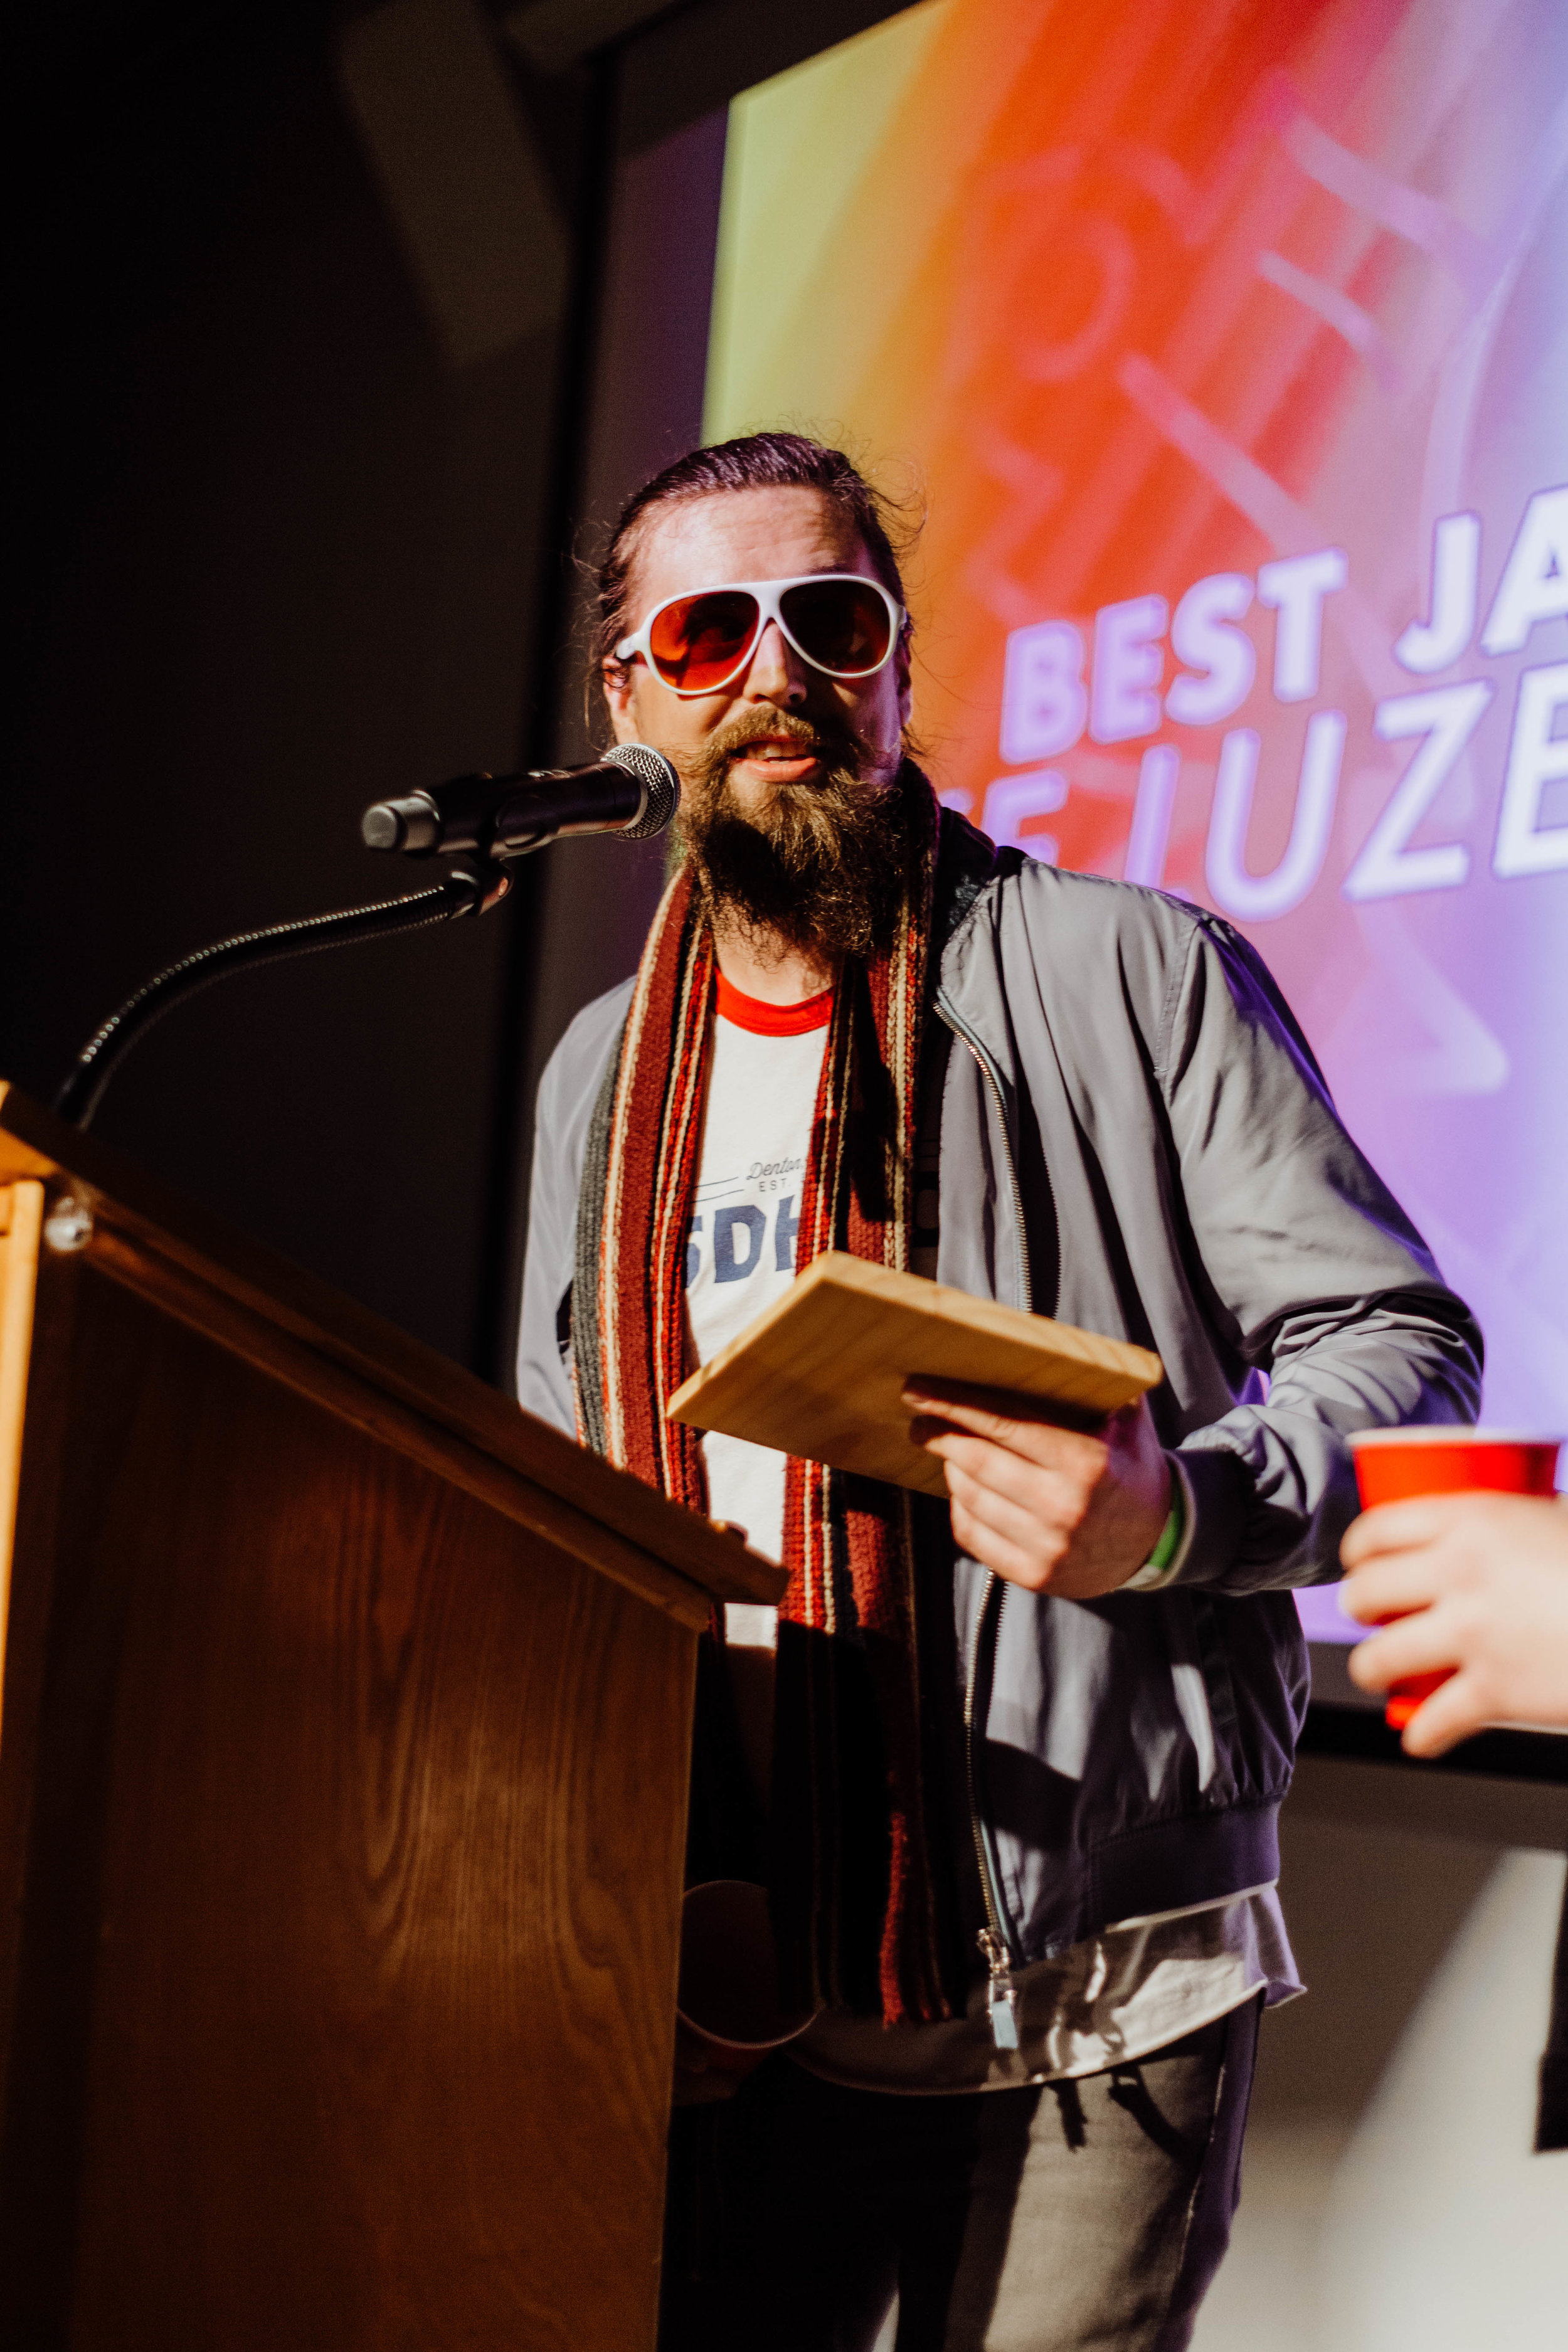 Mike Luzecky accepting his award for Best Jazz Act